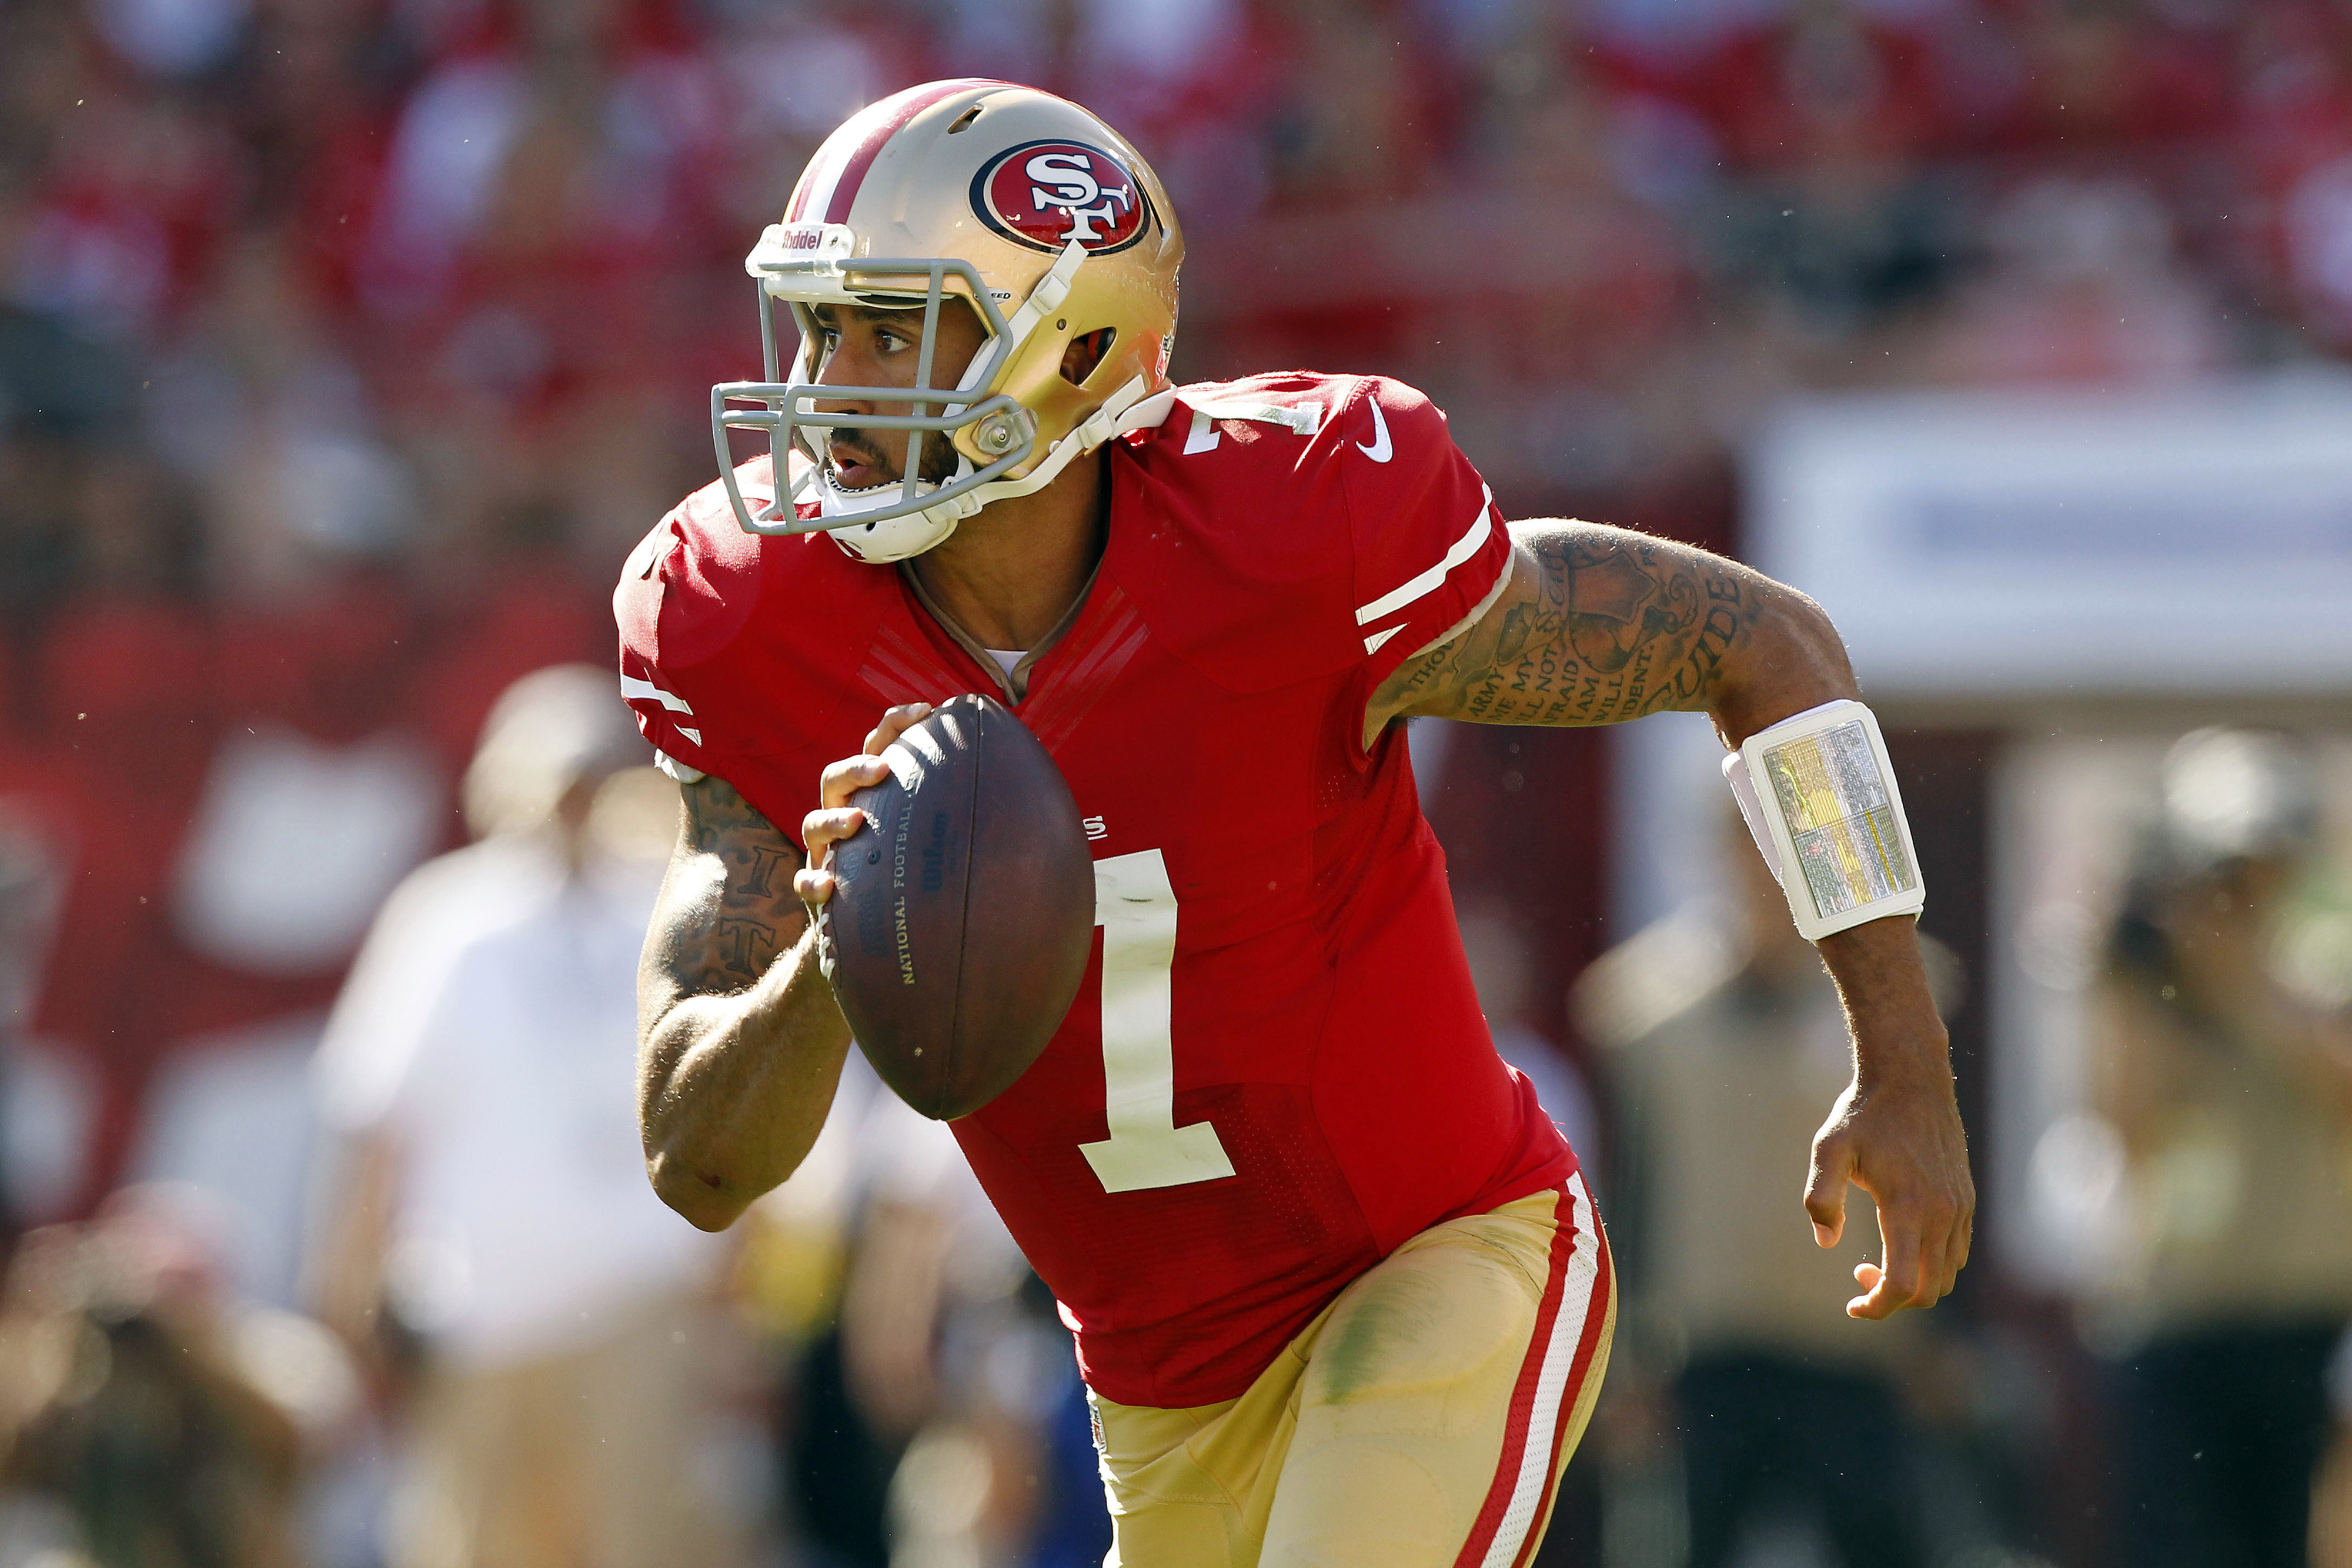 Colin Kaepernick leads the 49ers to a big win against Green Bay in Week One